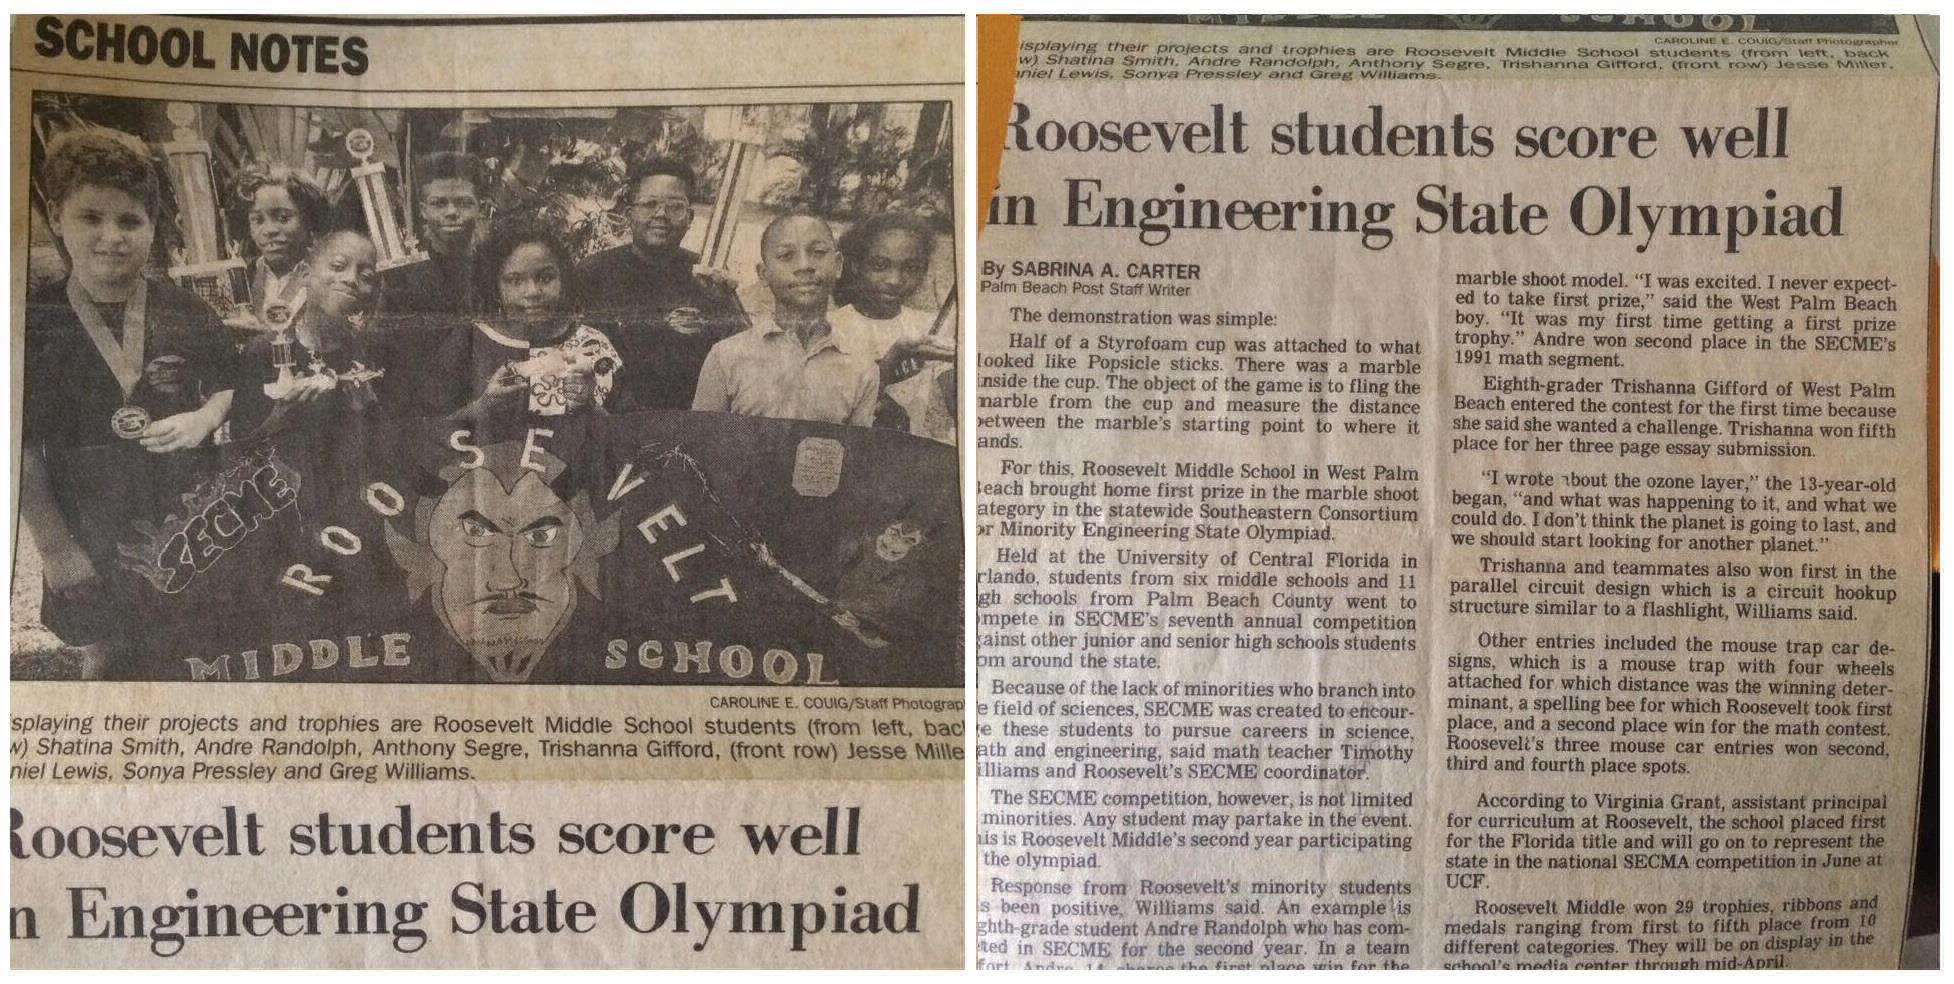 #STEM...It is Mr. Williams who encouraged me to give SECME a try and I never forgot that feeling we experienced in 1992 as state champions...and since that time I've remained a lover and worker of the information technology field. Mr. Timothy Williams, is forever in my memory. Roosevelt Middle had a superb math teacher!